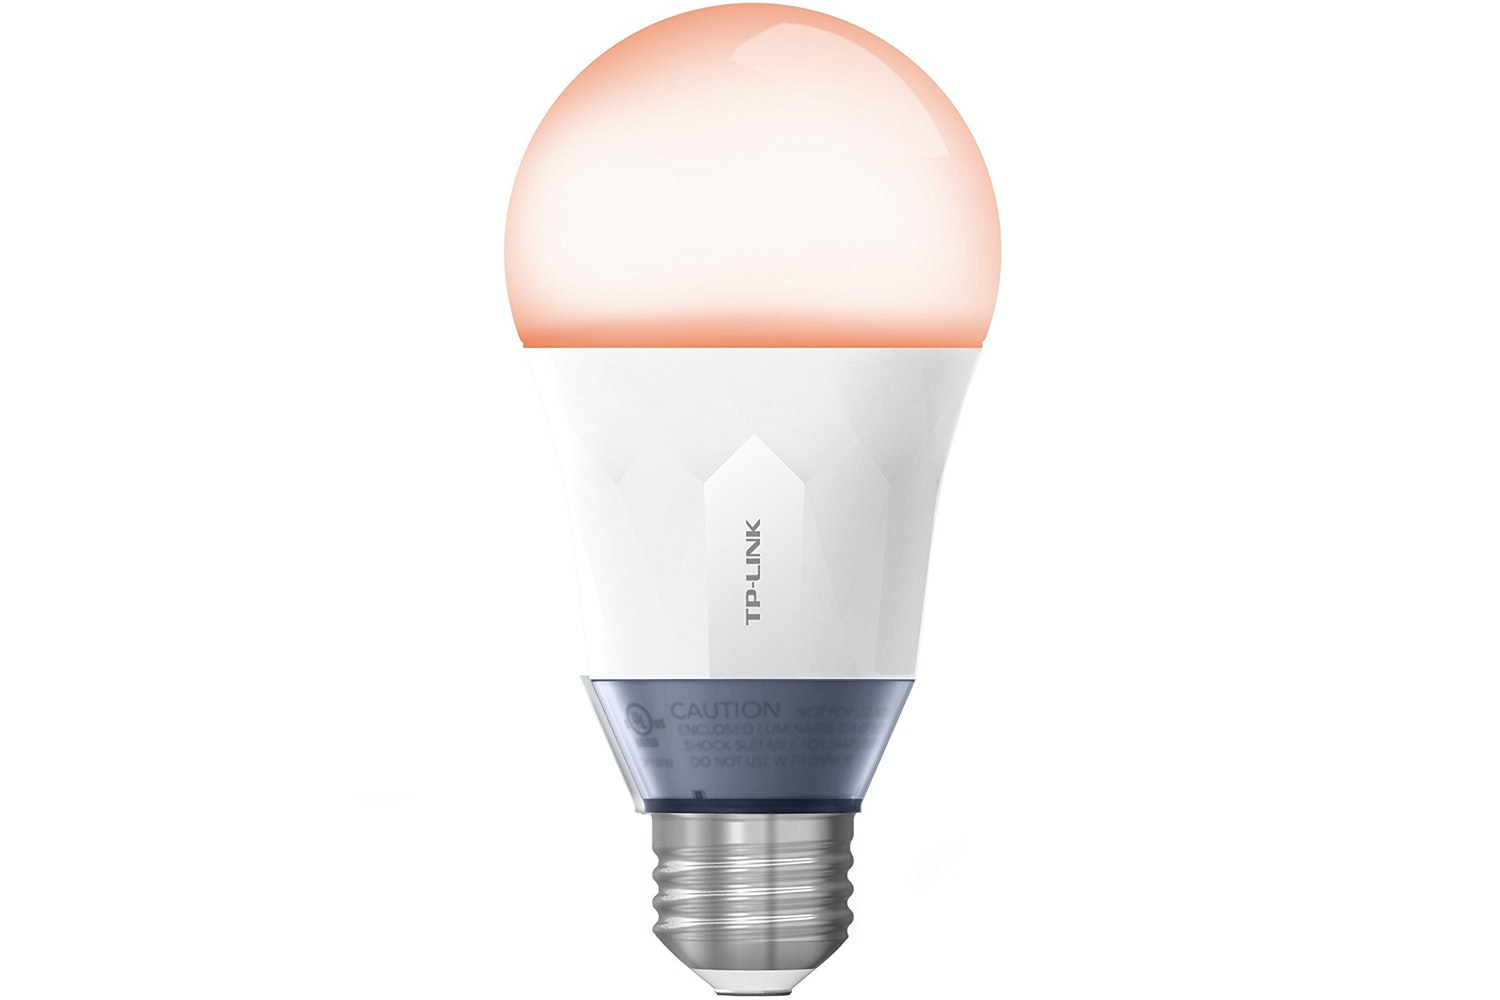 TP-LINK Smart Wi-Fi LED Bulb | Colour